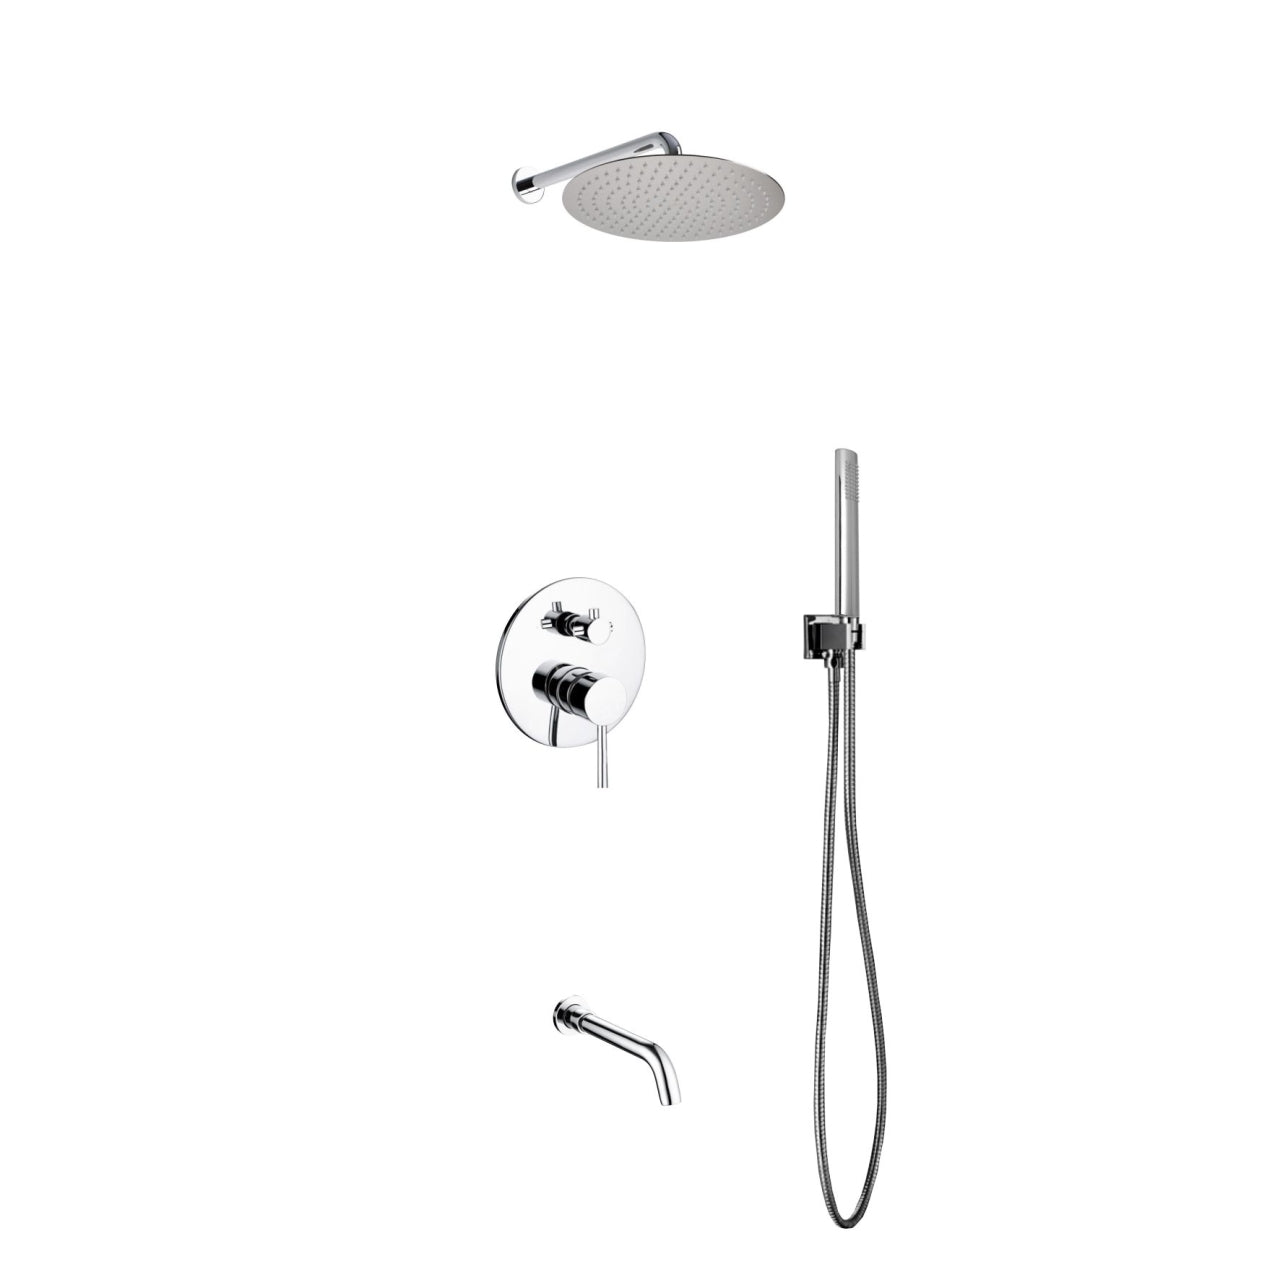 "AQUA RONDO- 12"" Wall Mount Shower Faucet With Handheld and Tub Filler - Construction Commodities Supply Inc."